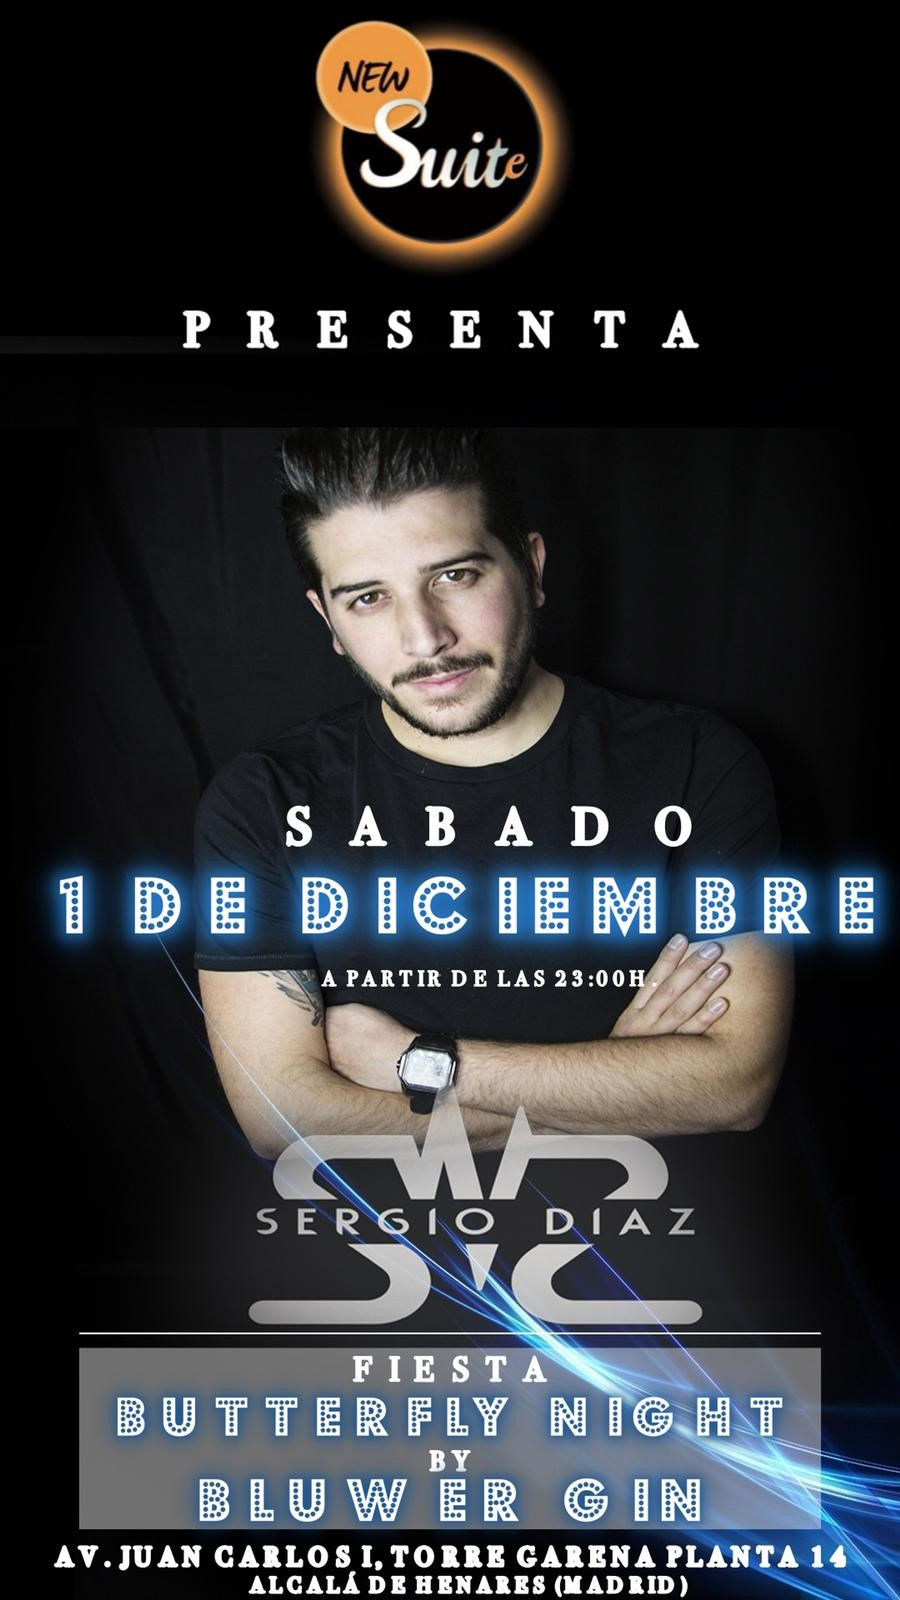 New Suite-Cartel Sergio Diaz Dj